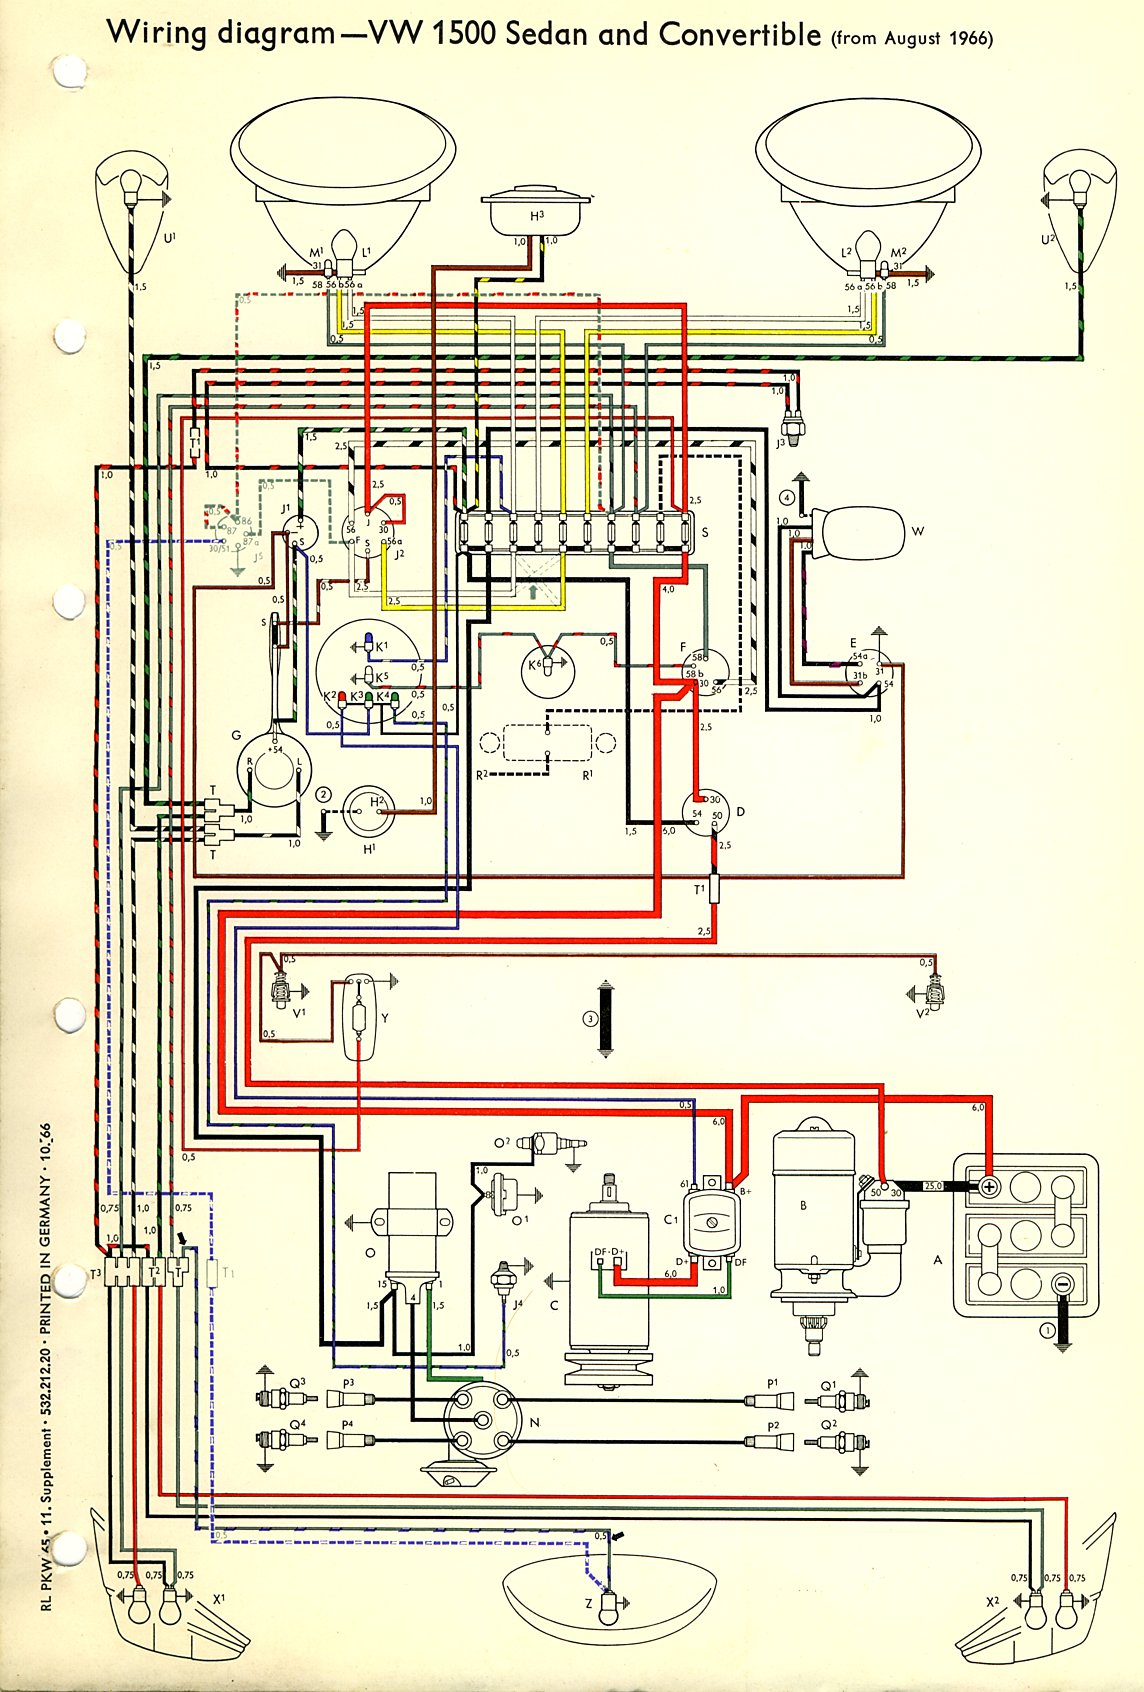 74 vw bug wiring diagram schematics wiring diagrams u2022 rh seniorlivinguniversity co 1974 VW Engine Wiring Type 1 VW Engine